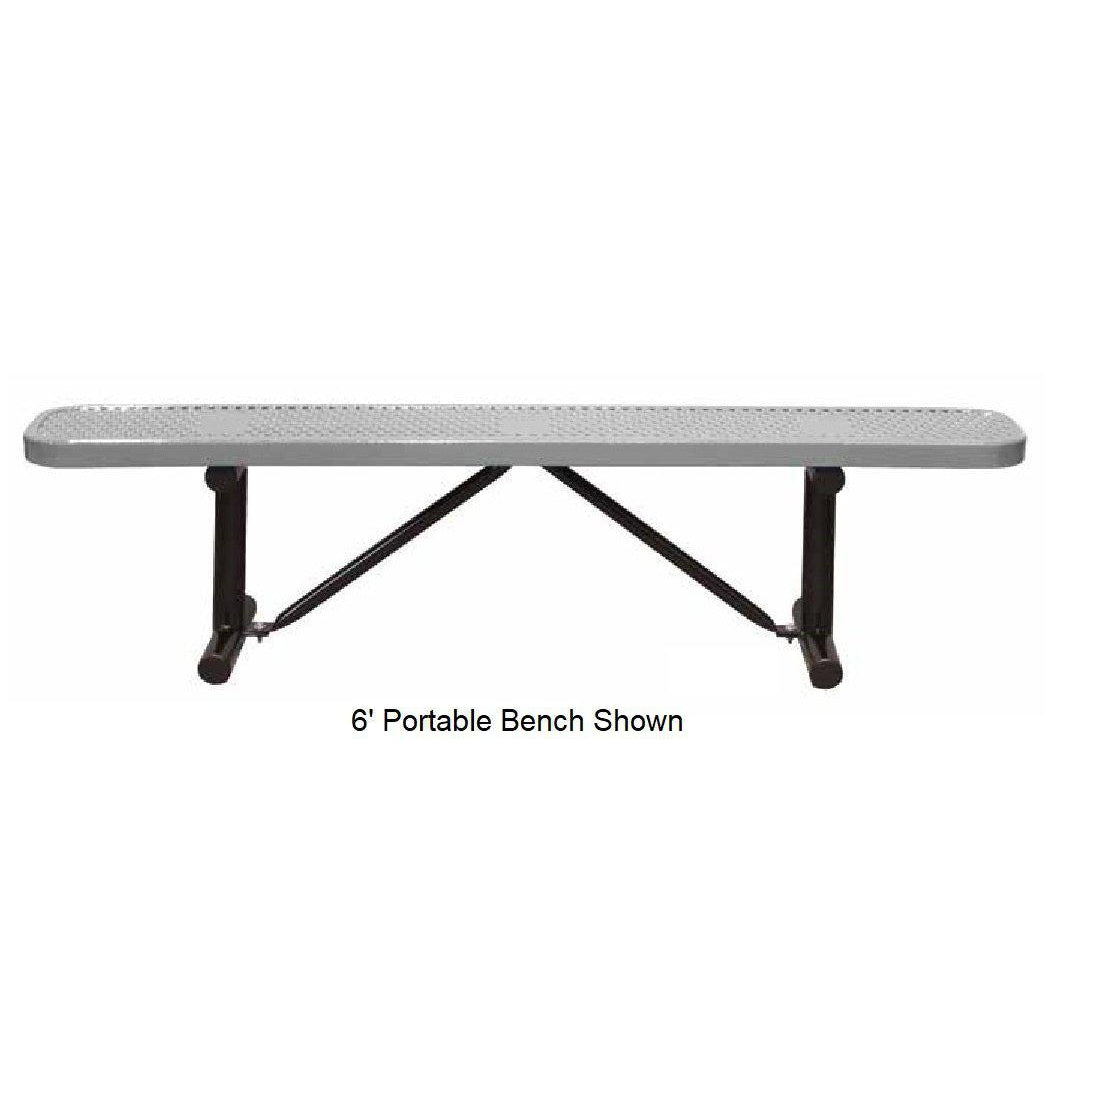 8' Standard Perforated Bench Without Back, Portable